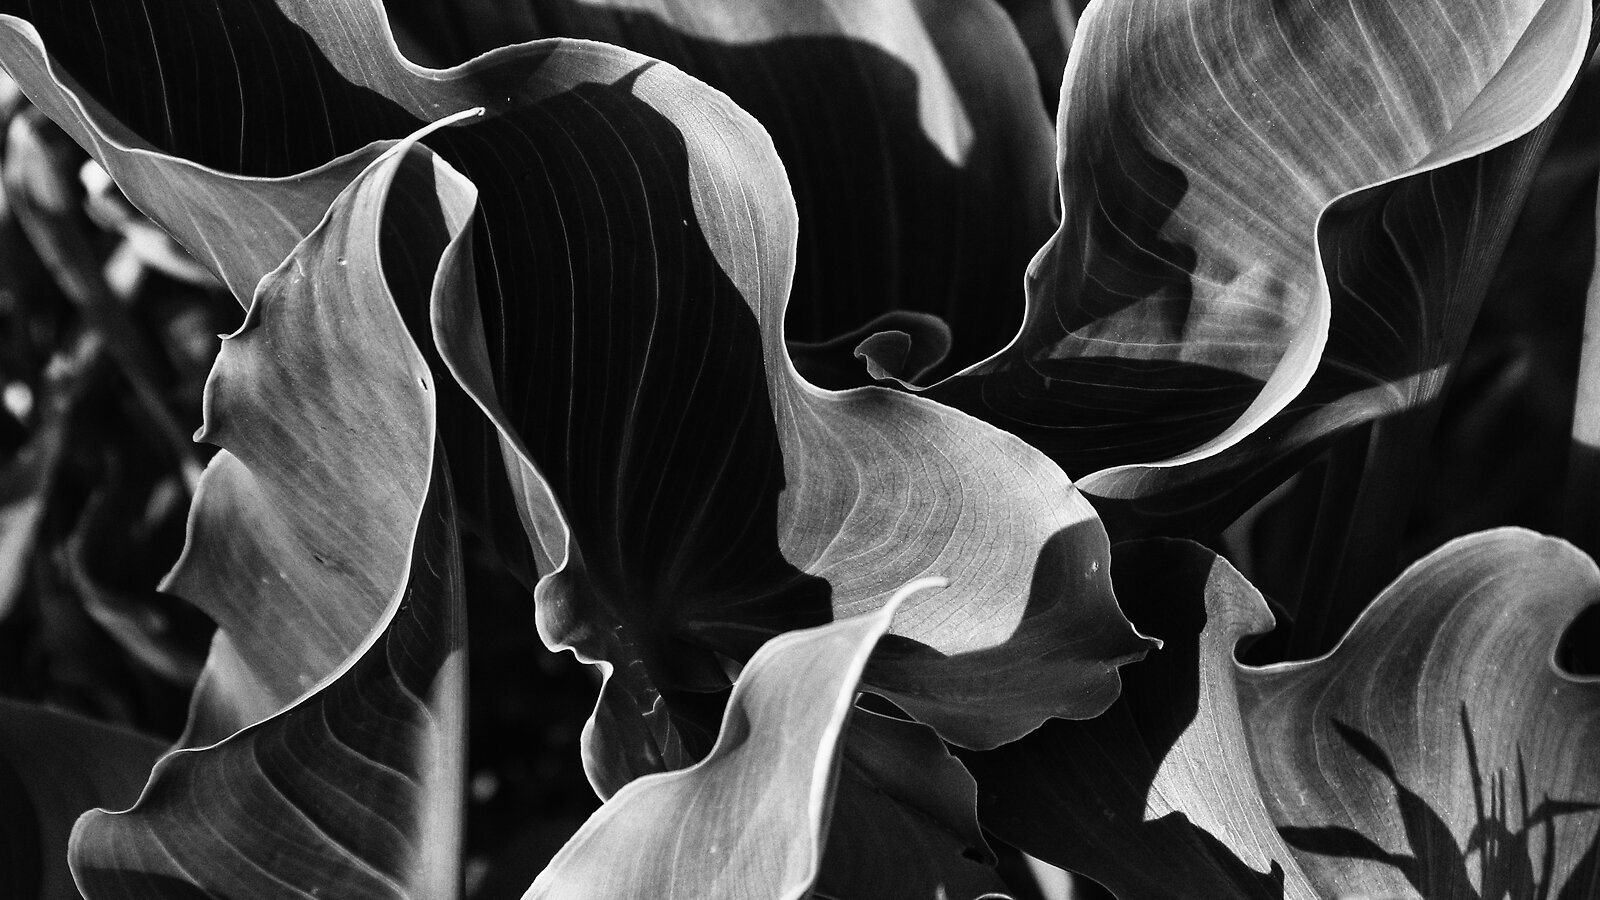 lily_leaves_CanM100_28to105_Dec20_BW.jpg